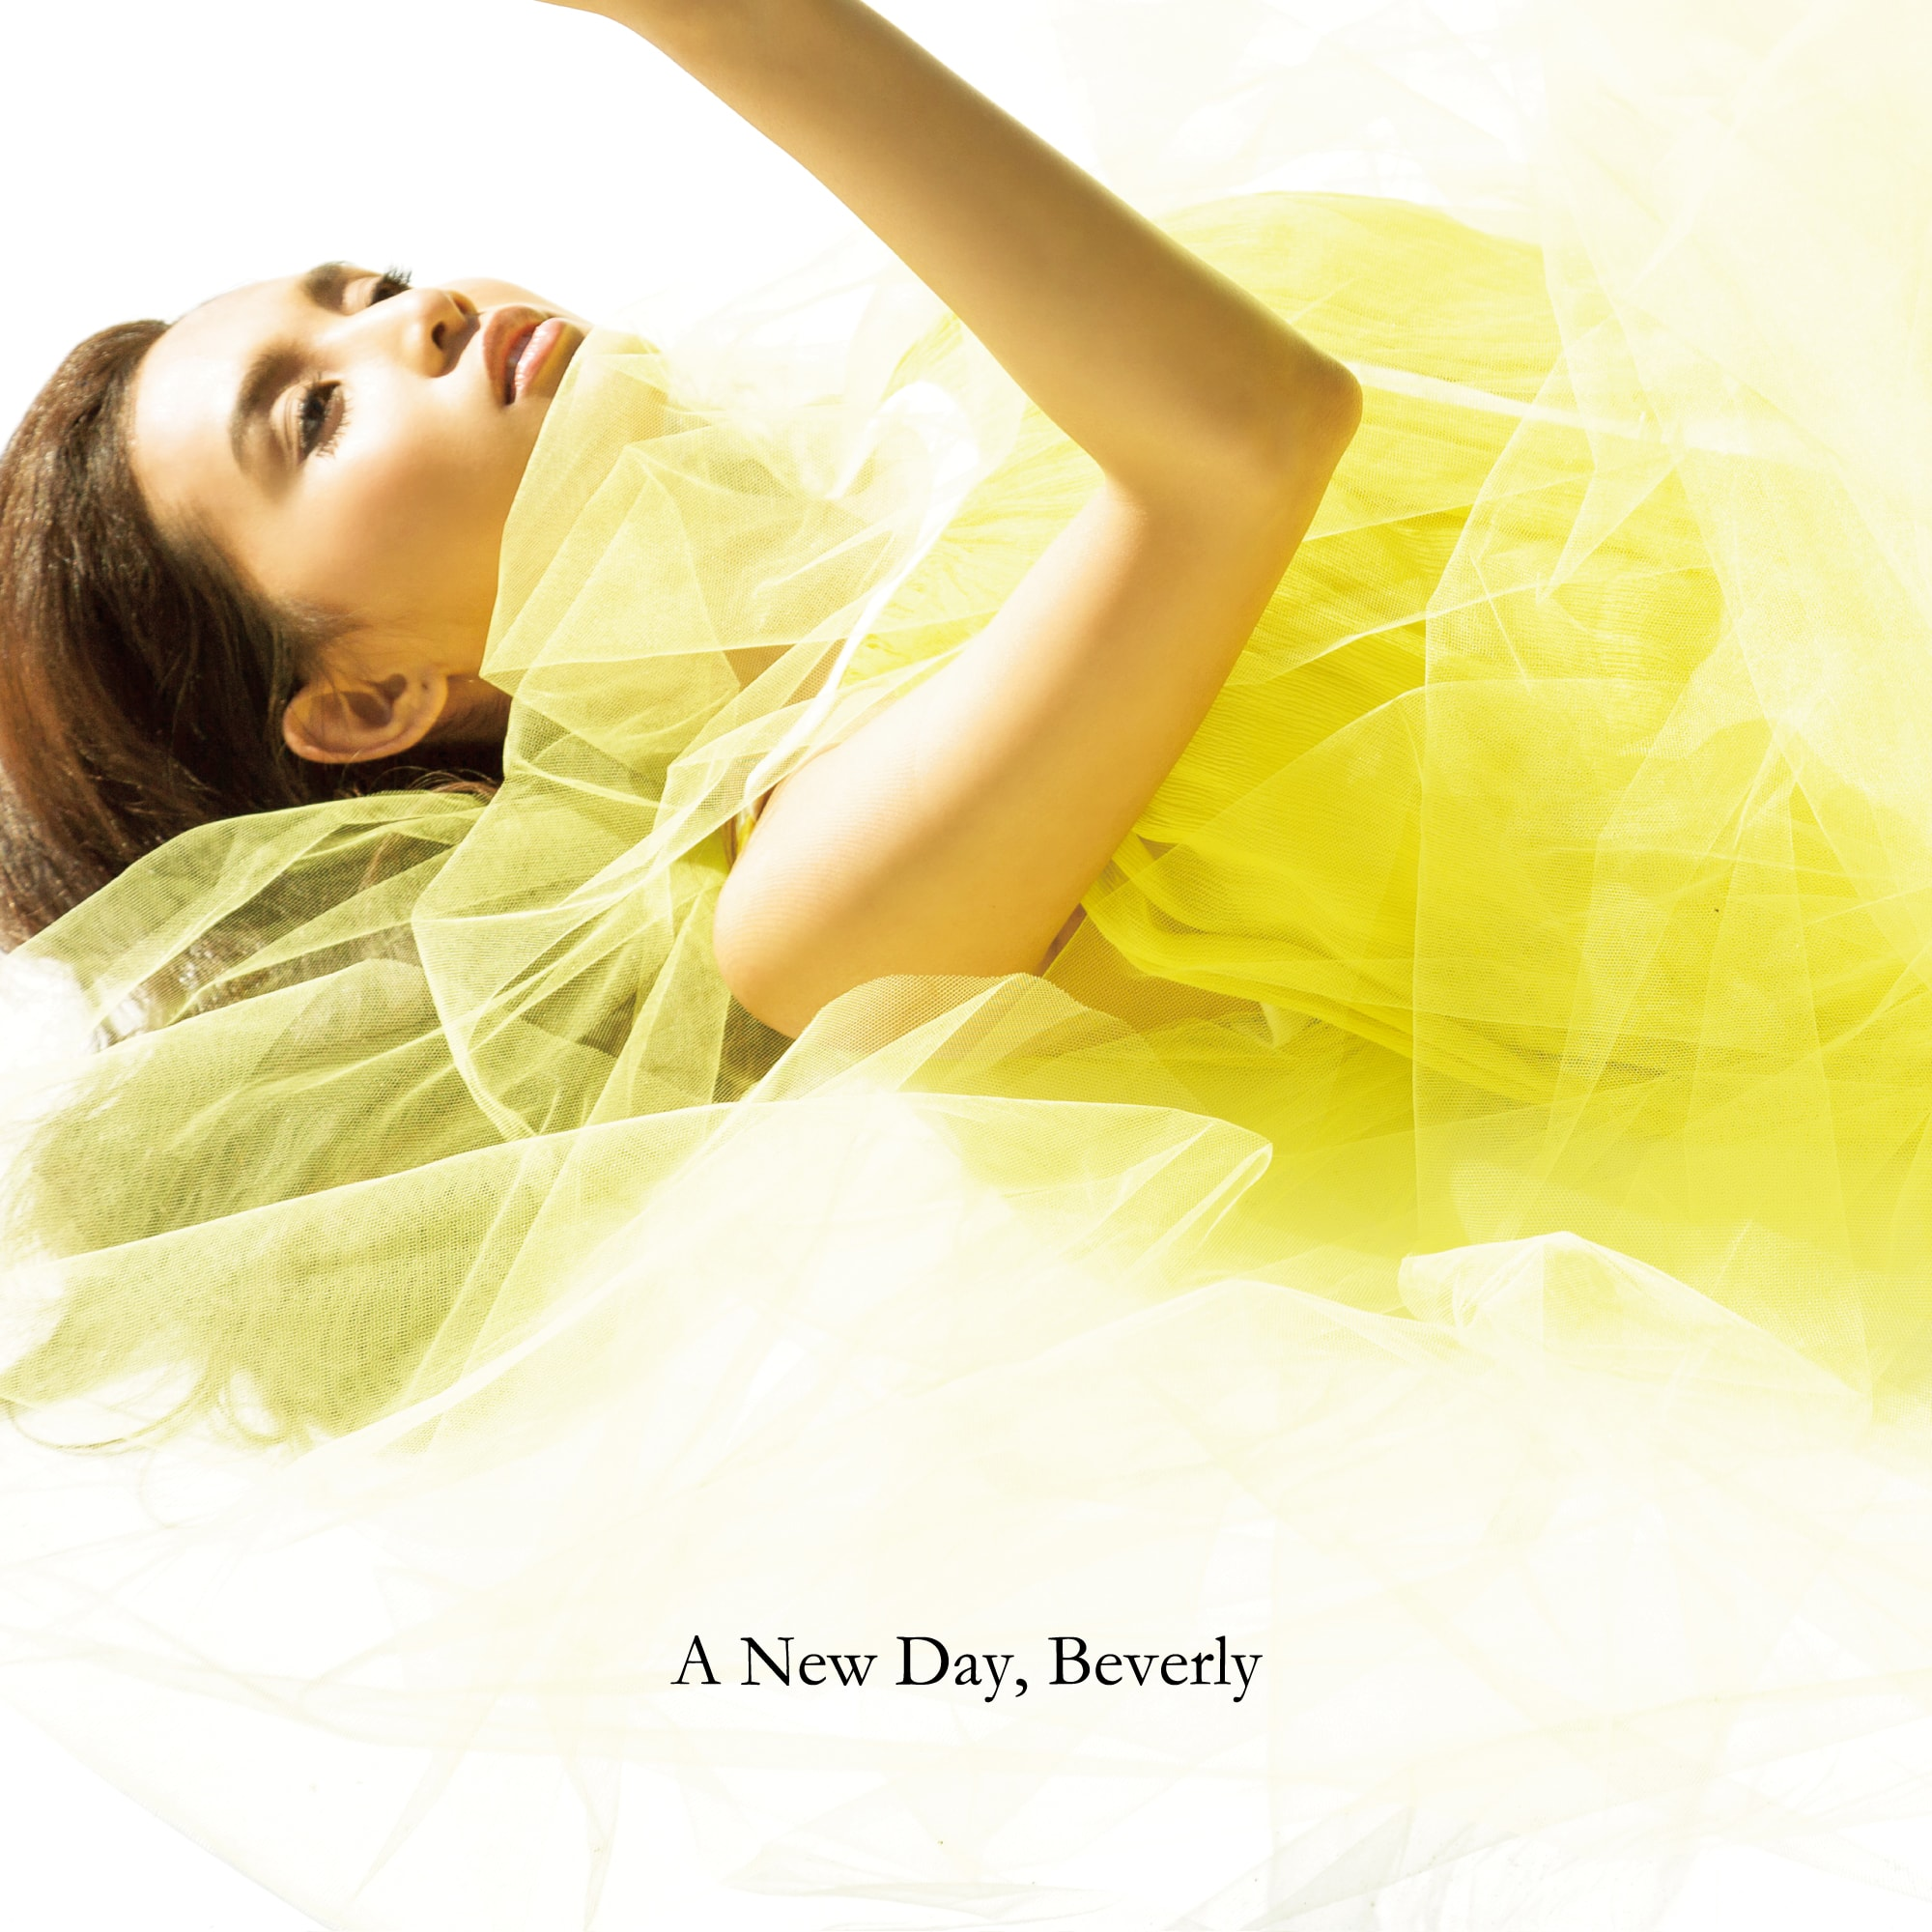 『A New Day』Beverly